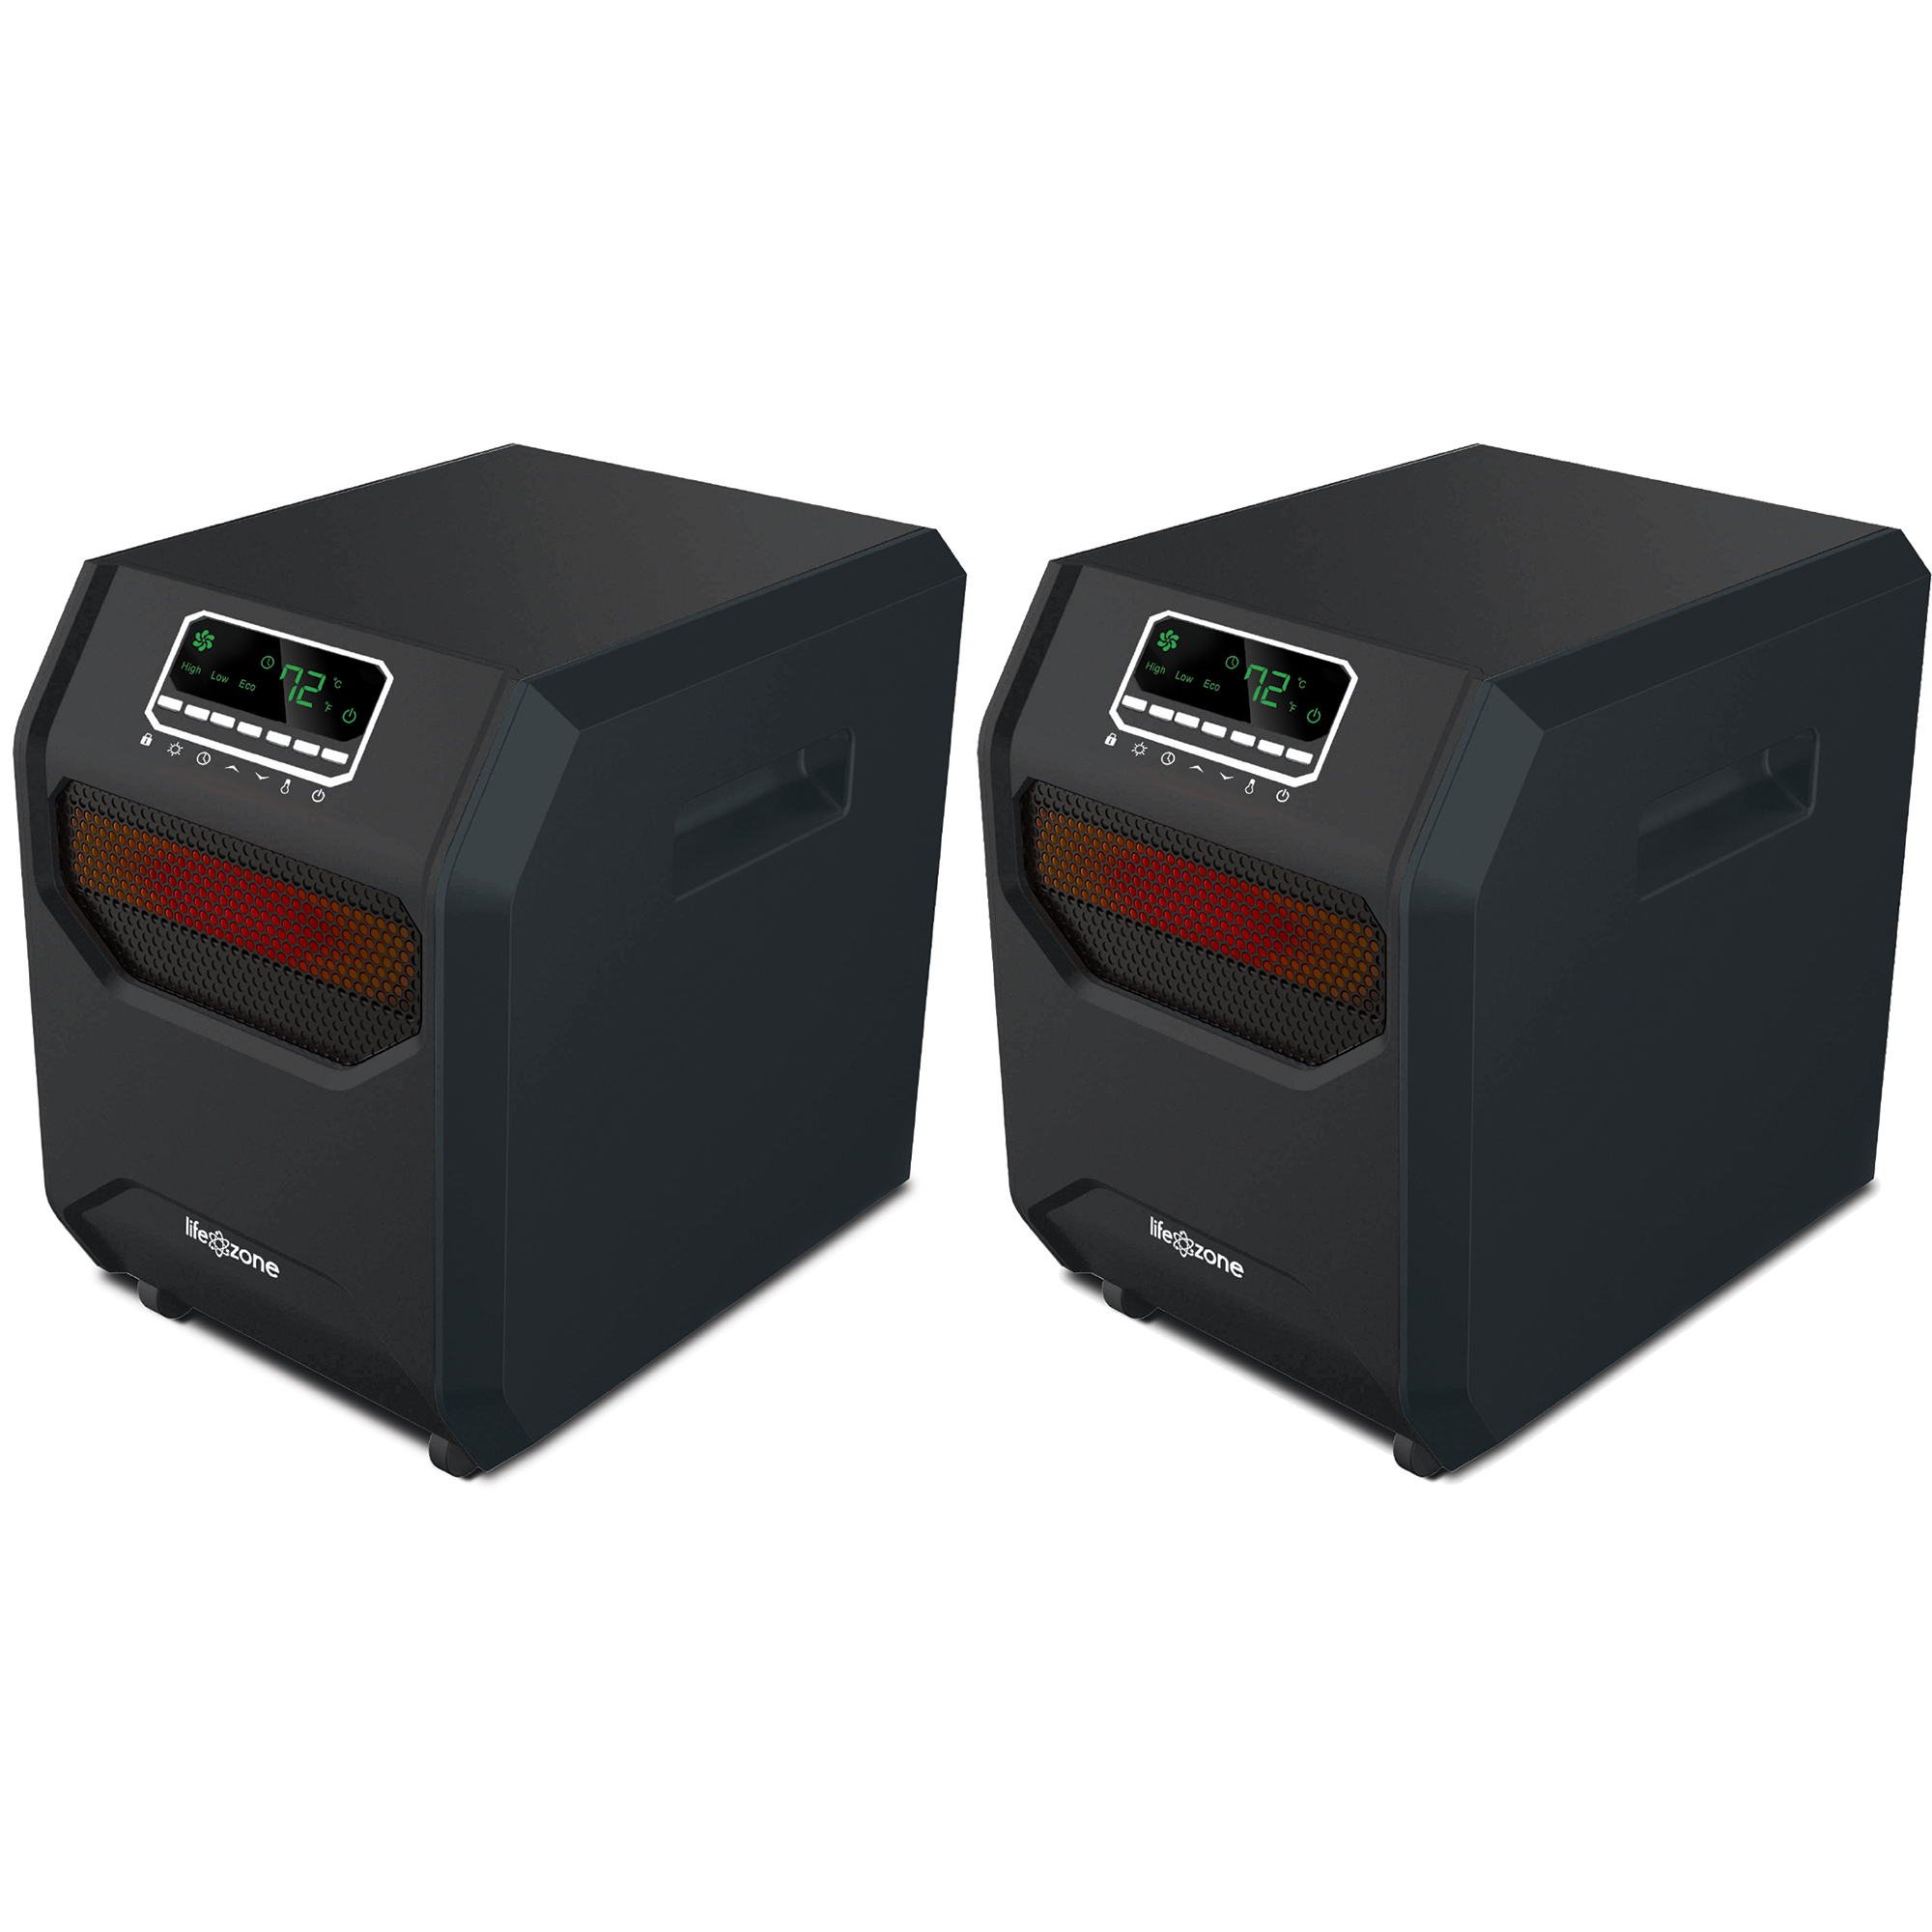 Lifesmart 4-Element Quartz Infrared Portable Electric Room Heaters (2 Pack)